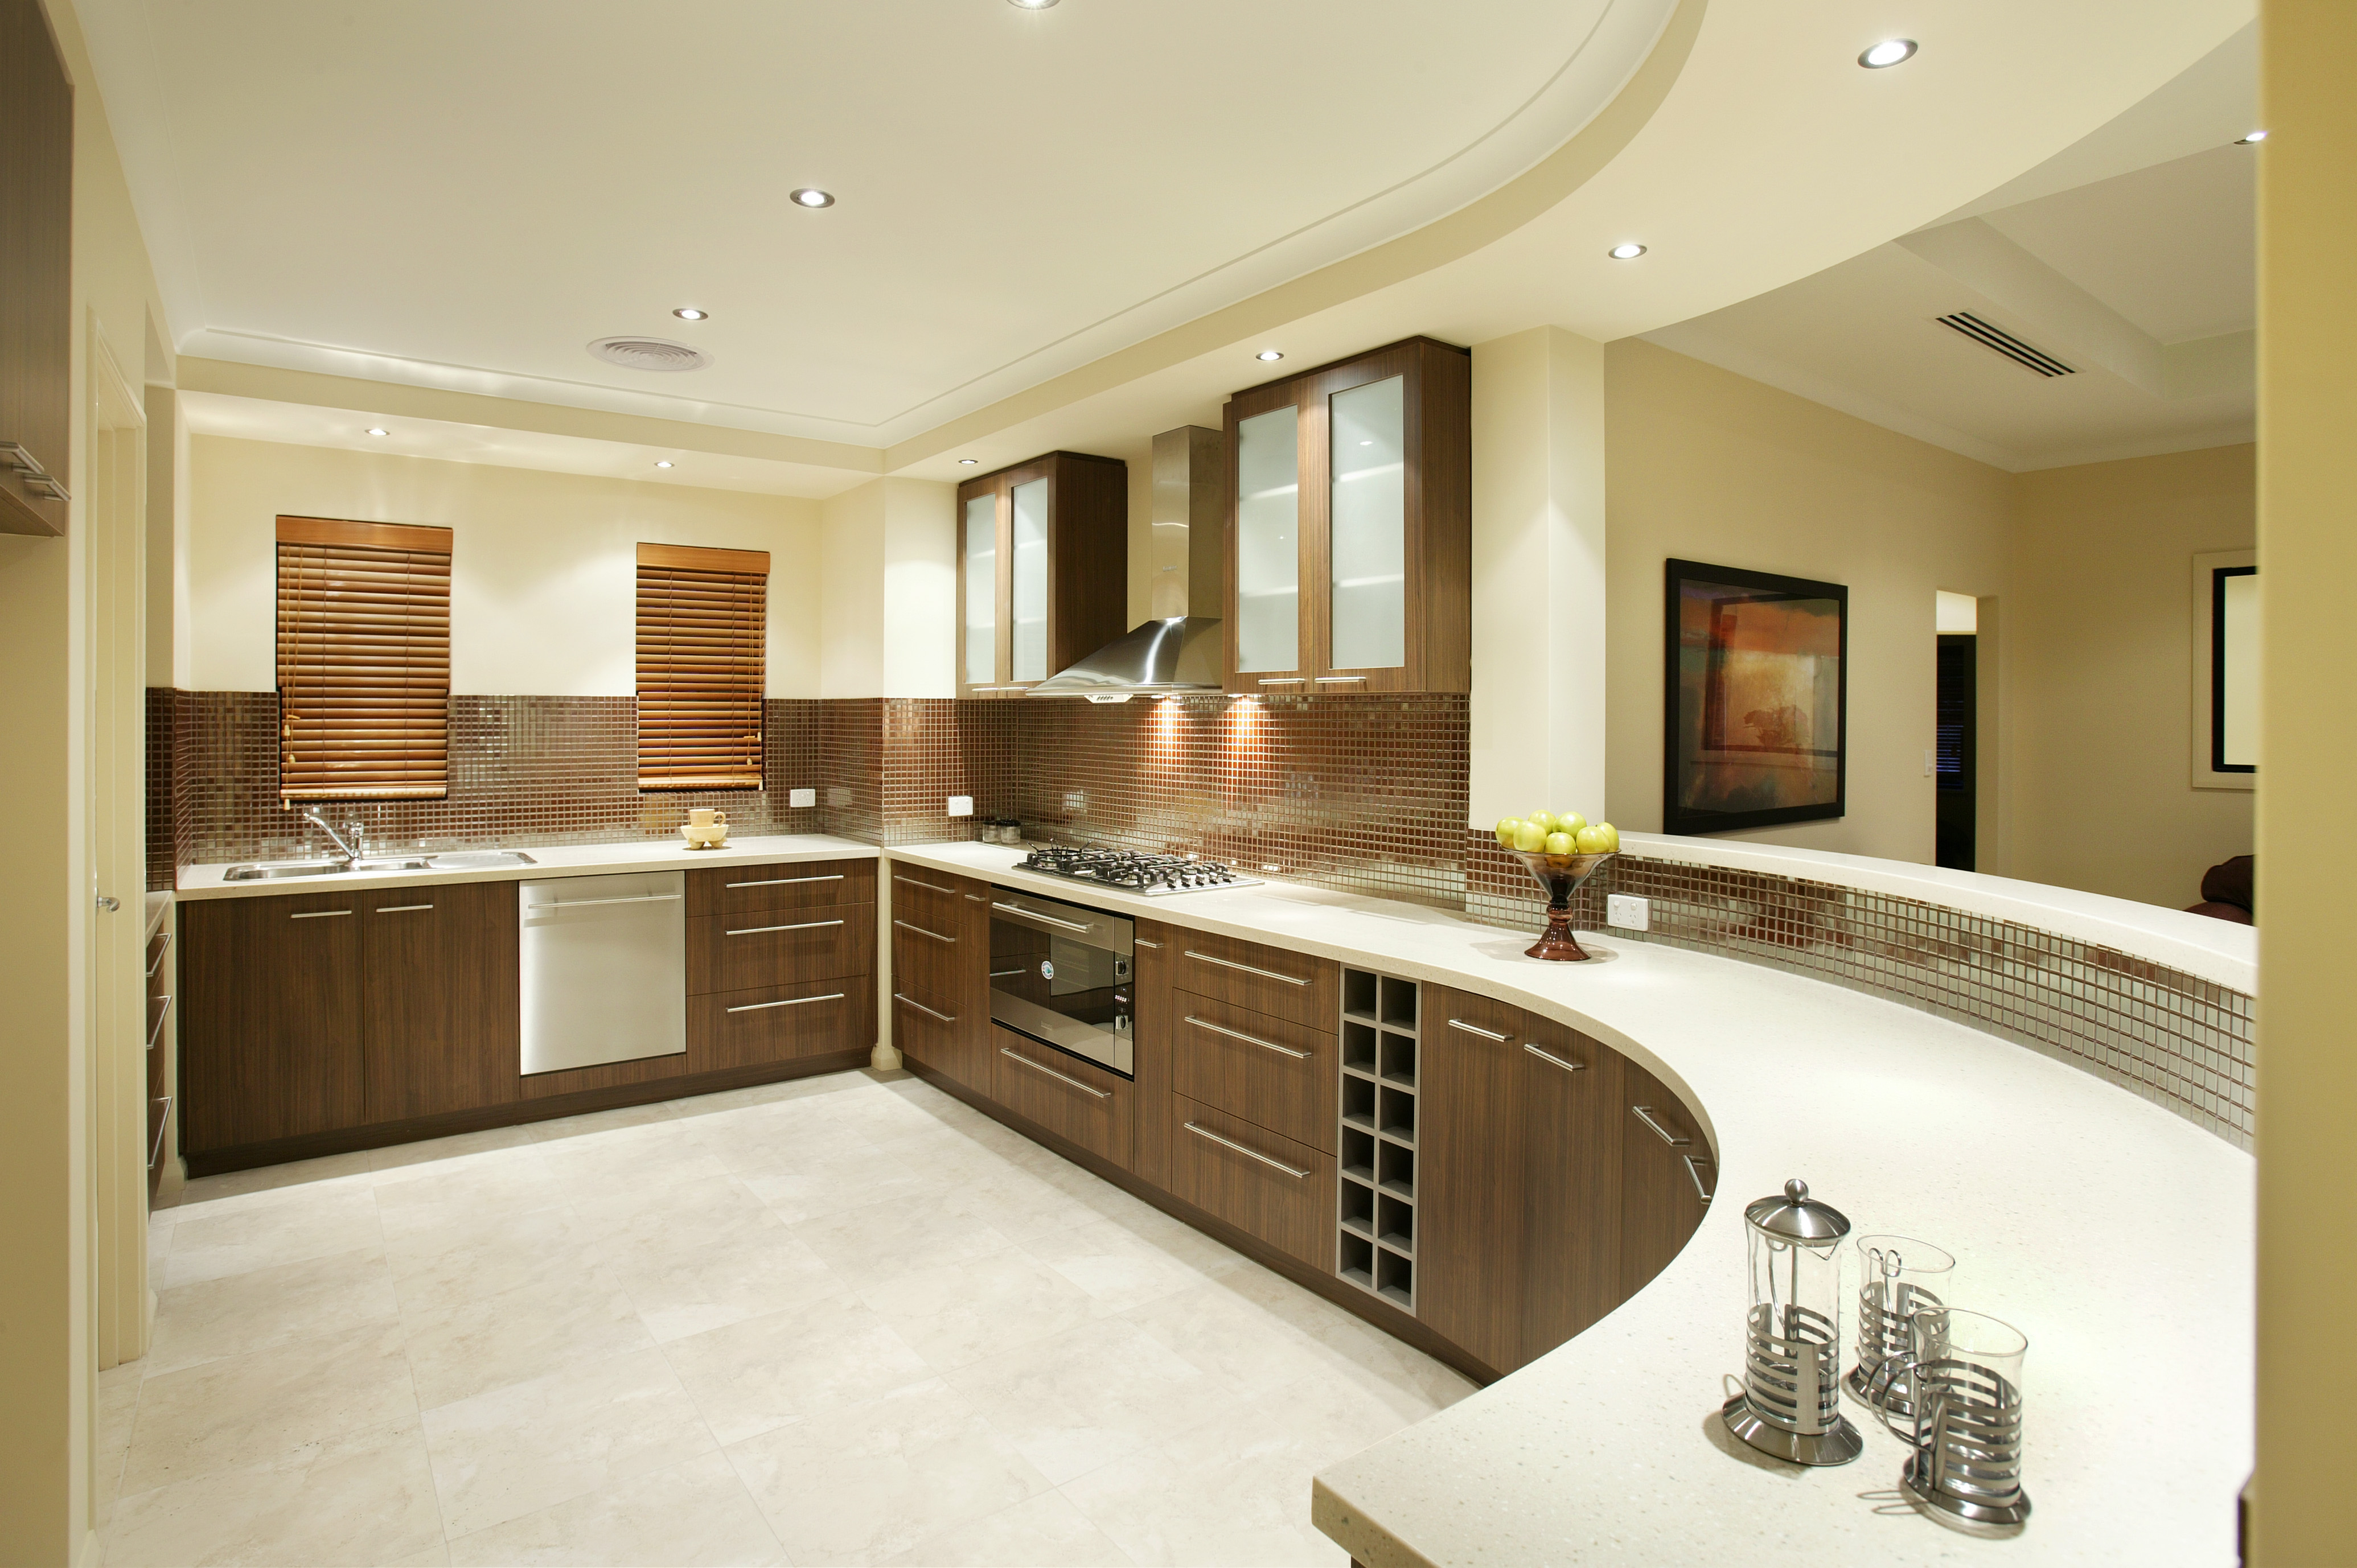 Indian kitchen design blog - 1503 Views No Comments On Home Kitchen Design Display